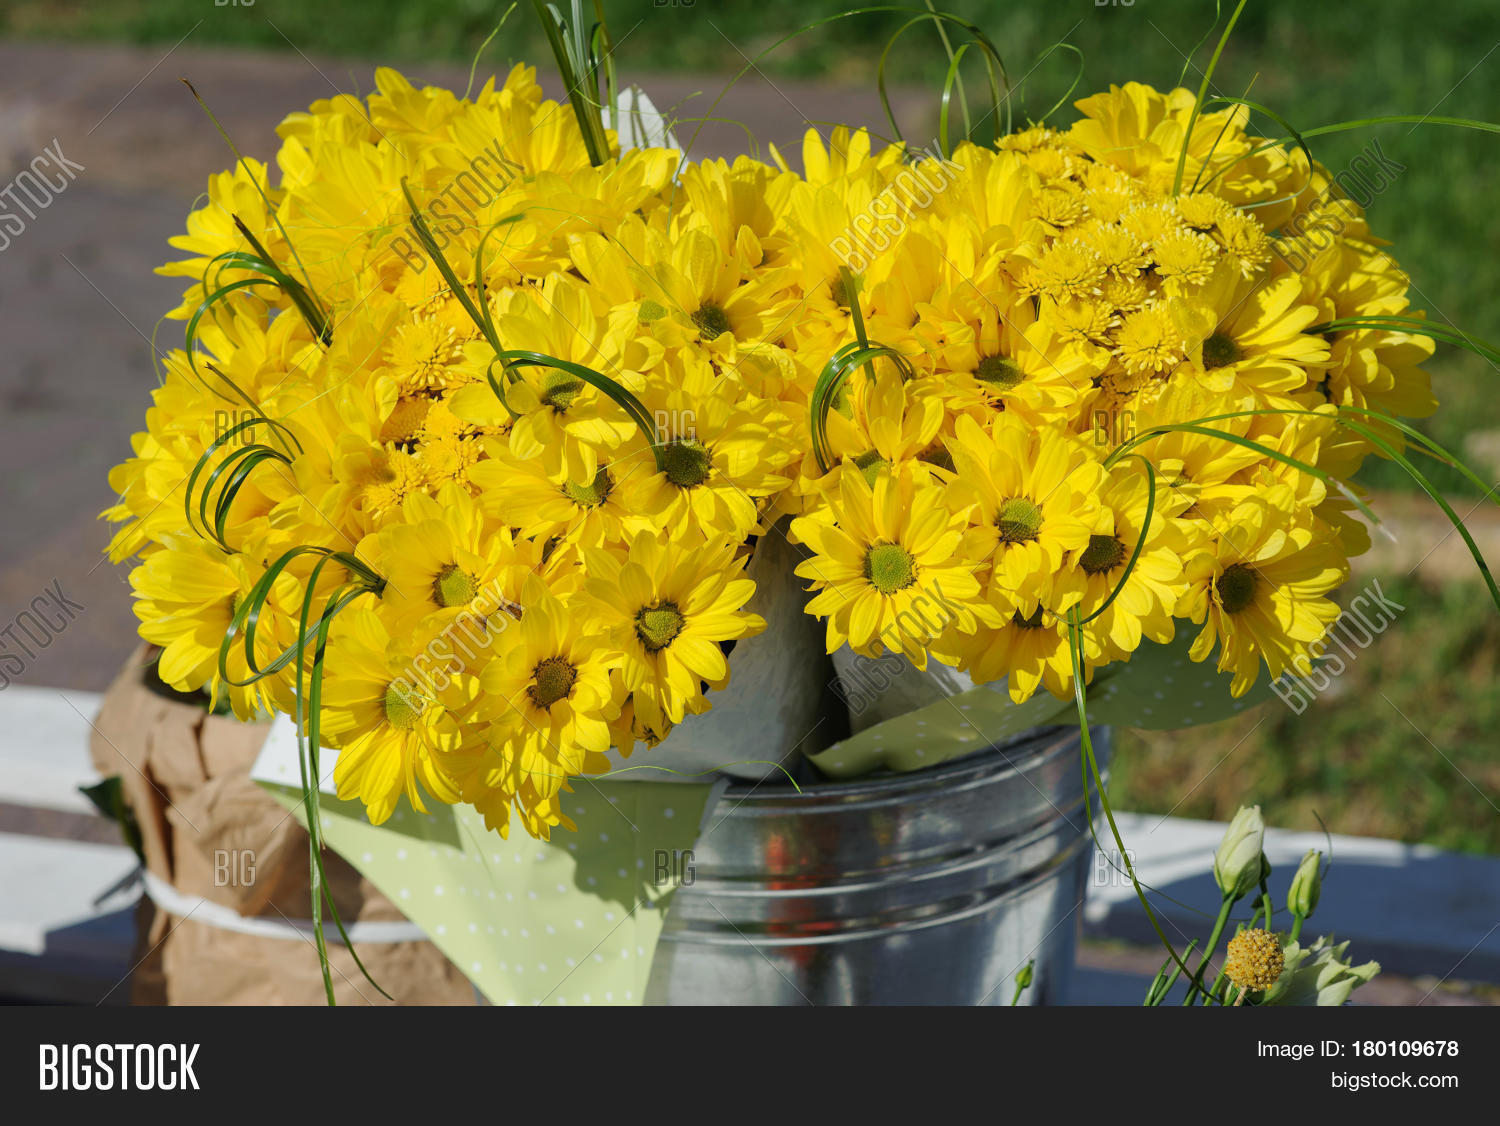 Yellow Chrysanthemum Bouquet Image & Photo | Bigstock